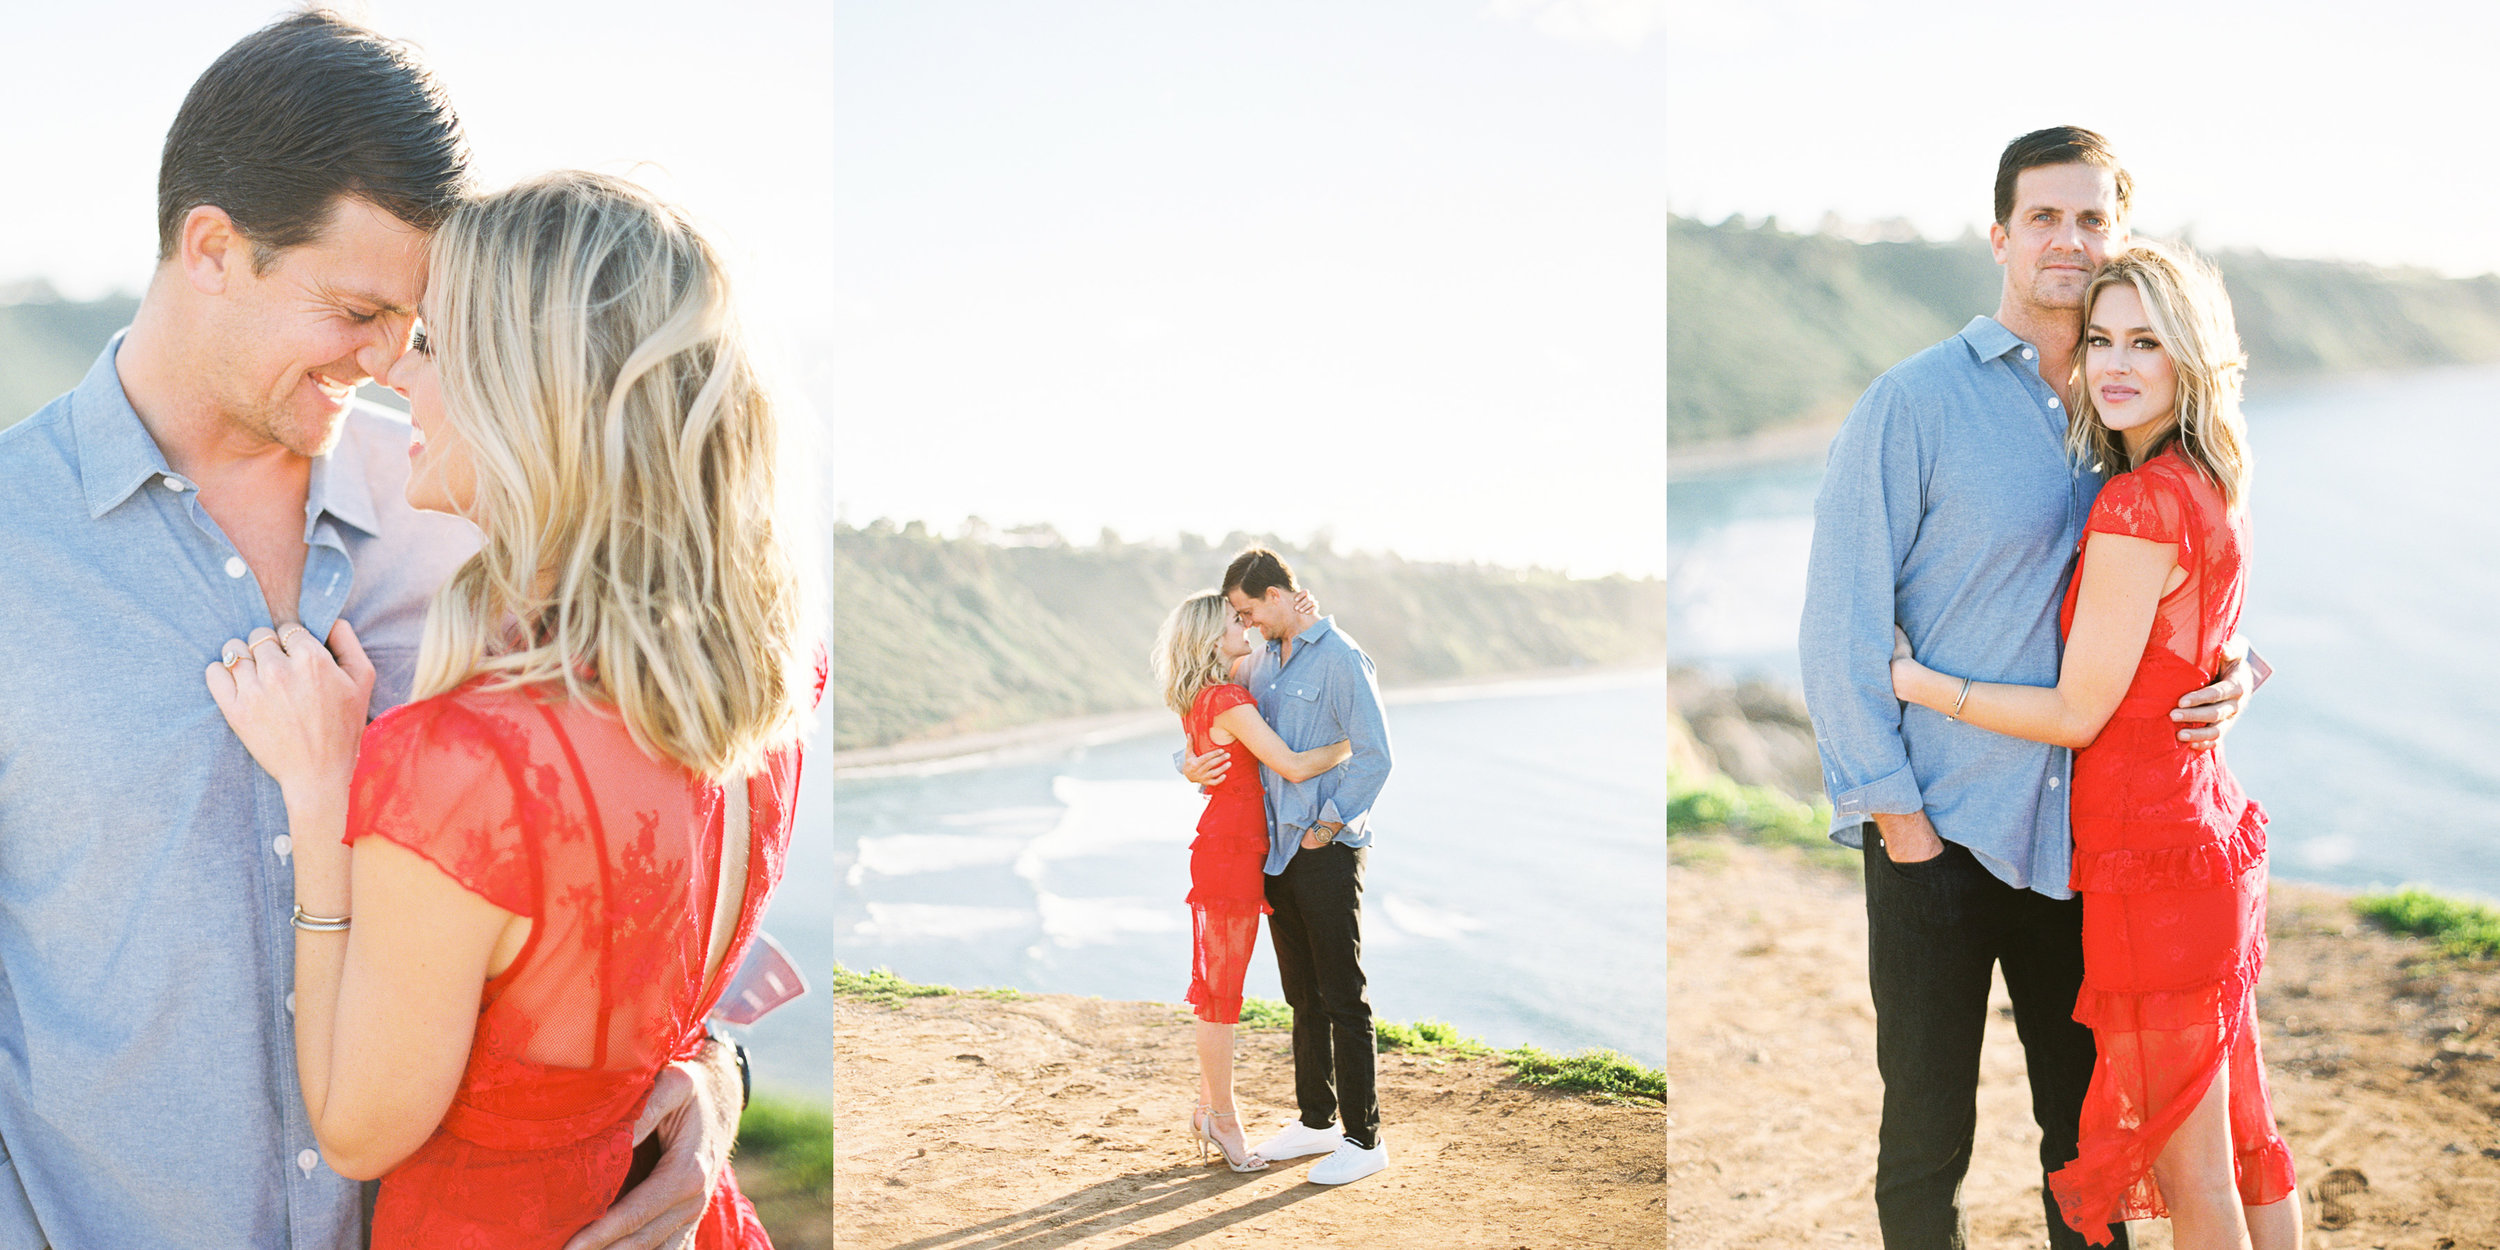 Rachel Owens Photography - Palos Verdes Beach Engagement - 3.jpg